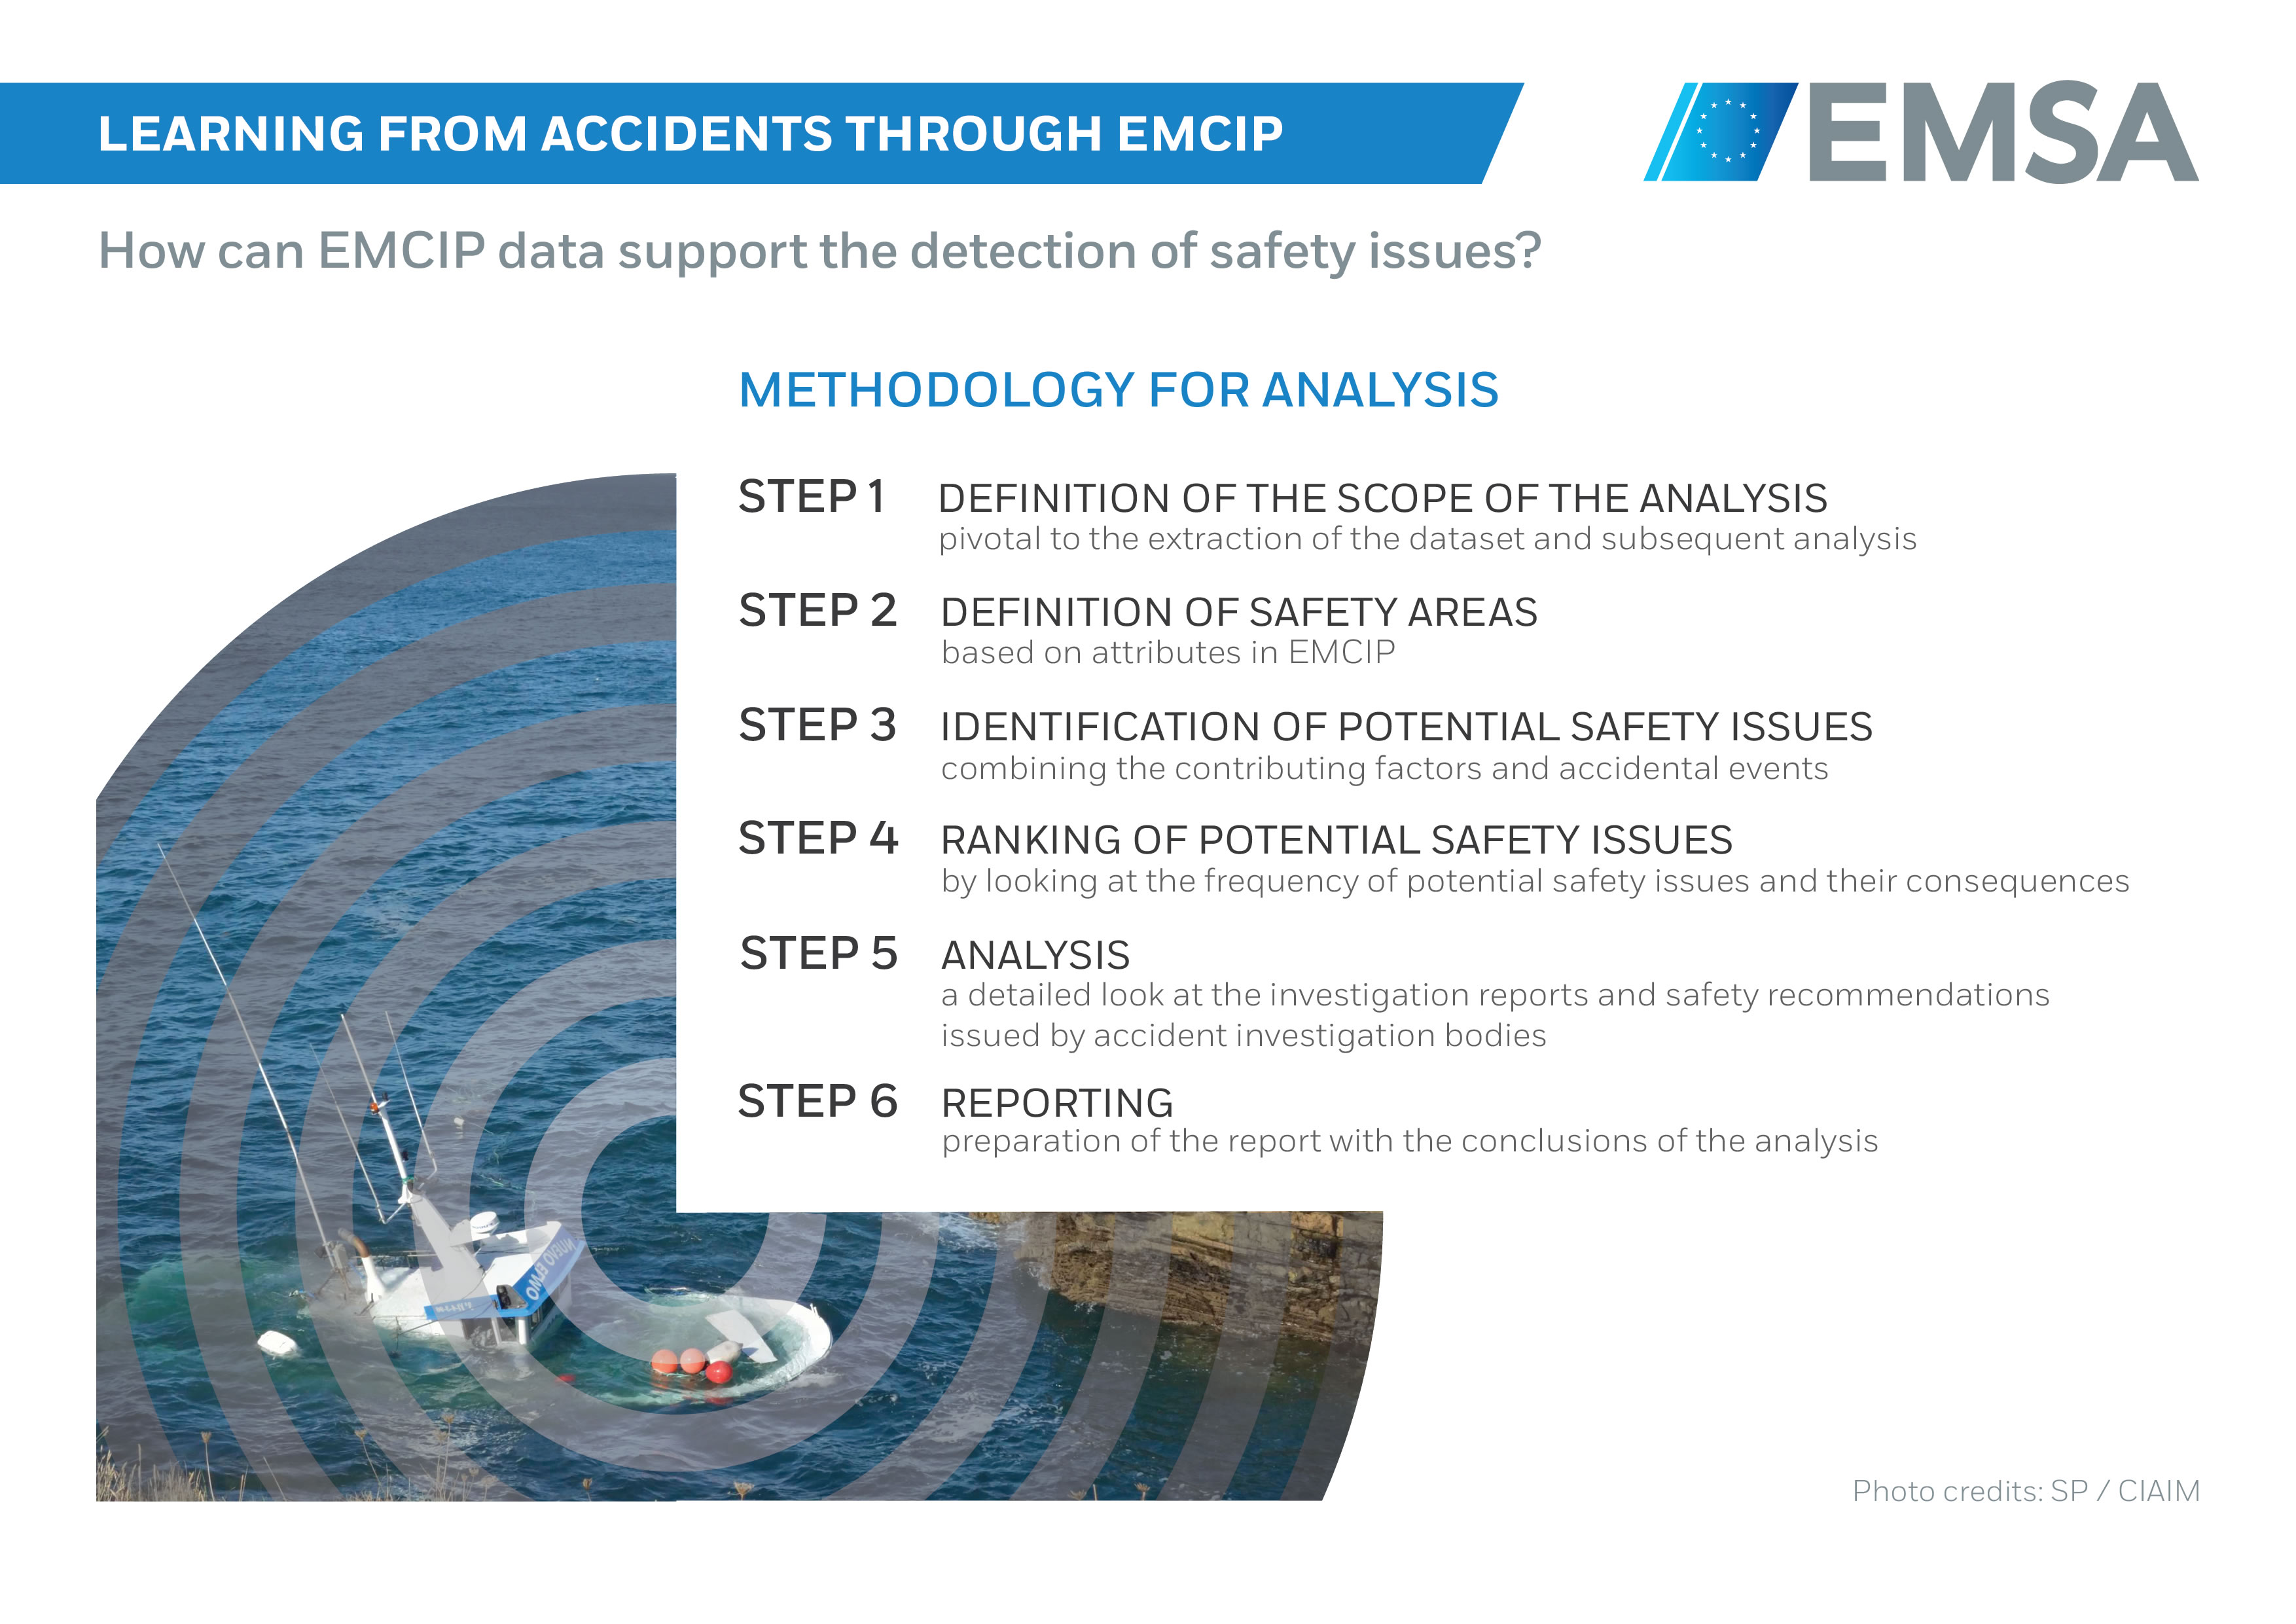 Learning from Accidents through EMCIP. How can EMCIP data su ... Image 1